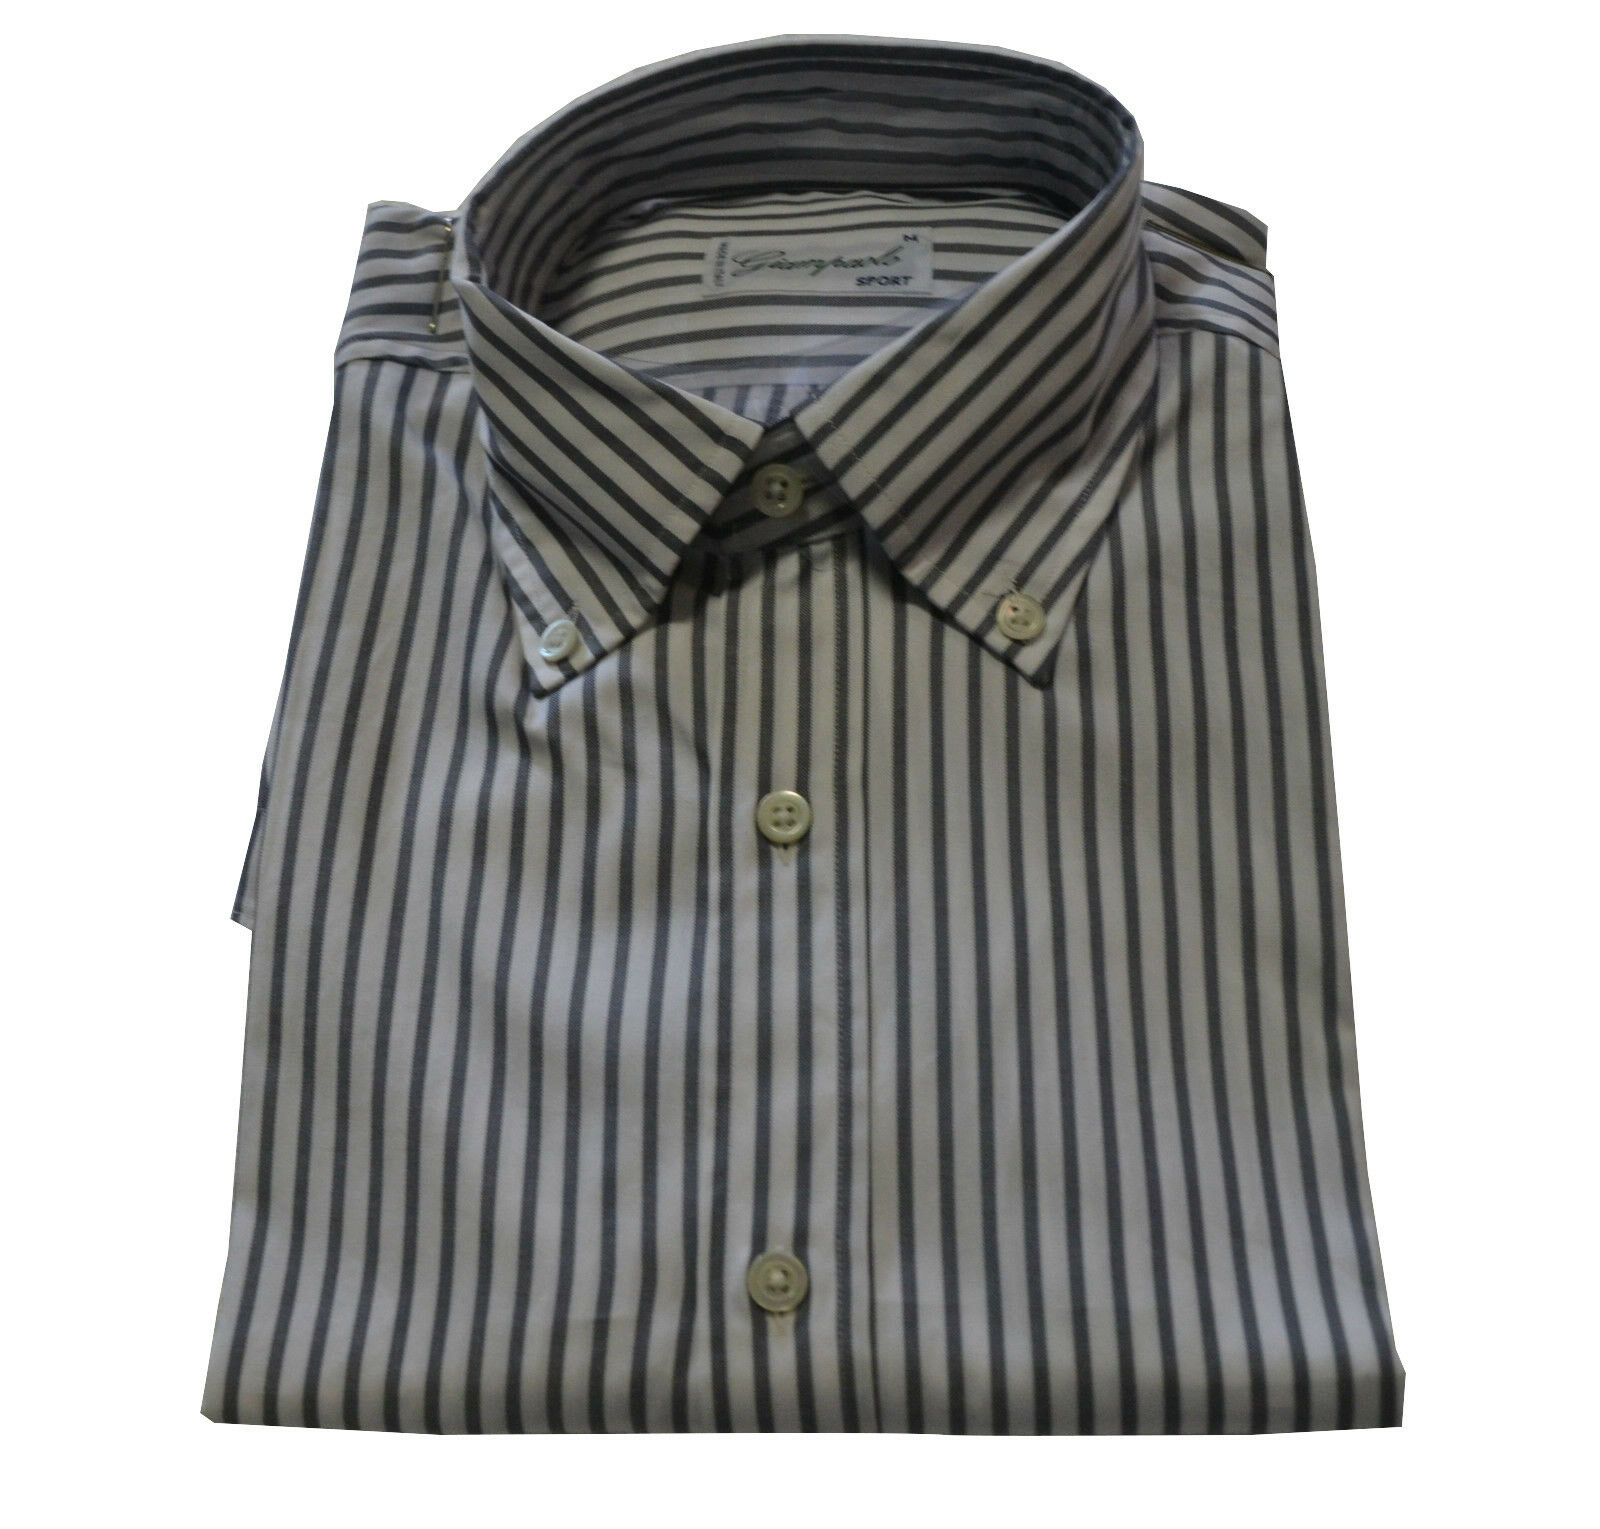 GIAMPAOLO SPORT men's shirts striped regular fit 100%cotton Made in